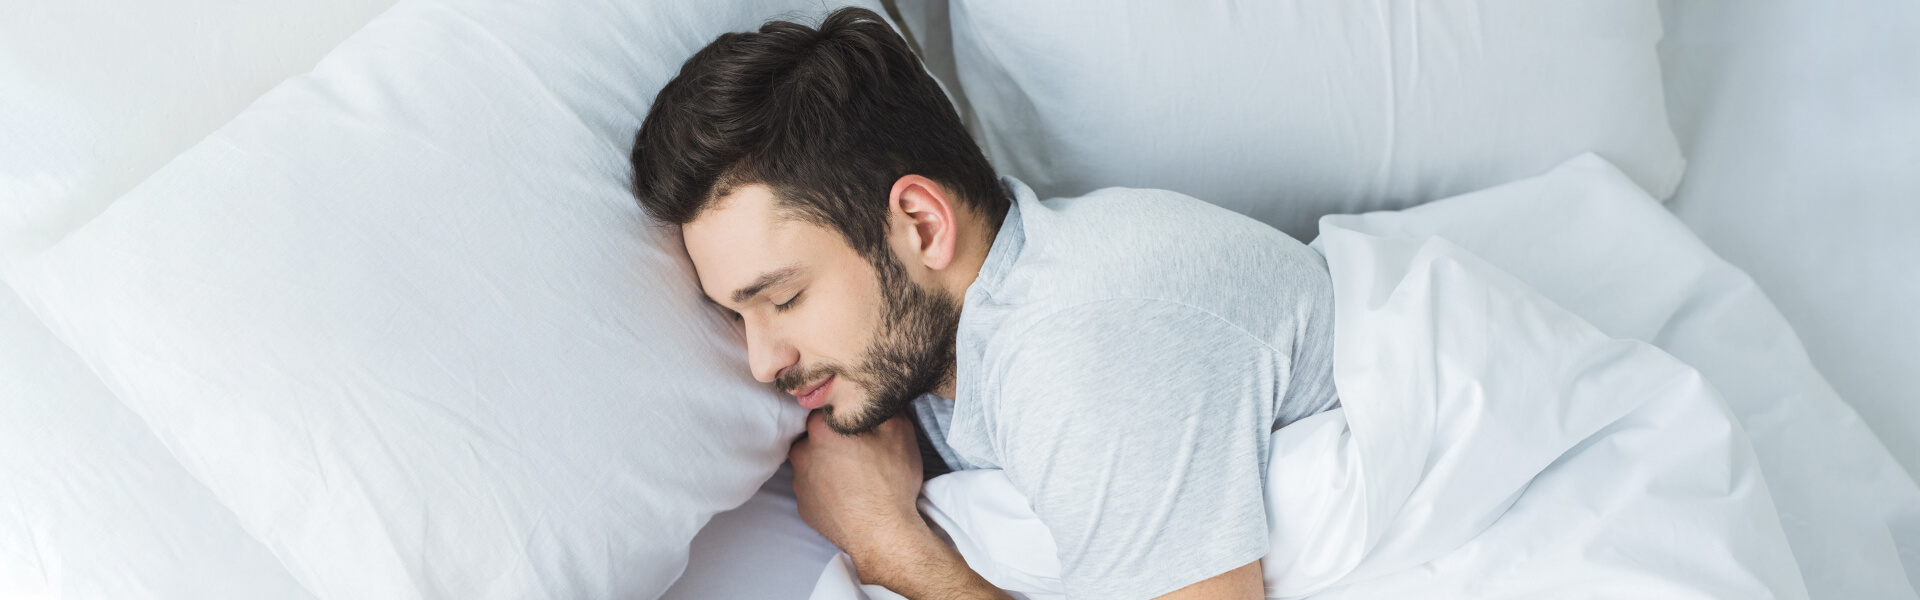 Sleep/Airway: Treatment Options for Obstructive Sleep Apnea